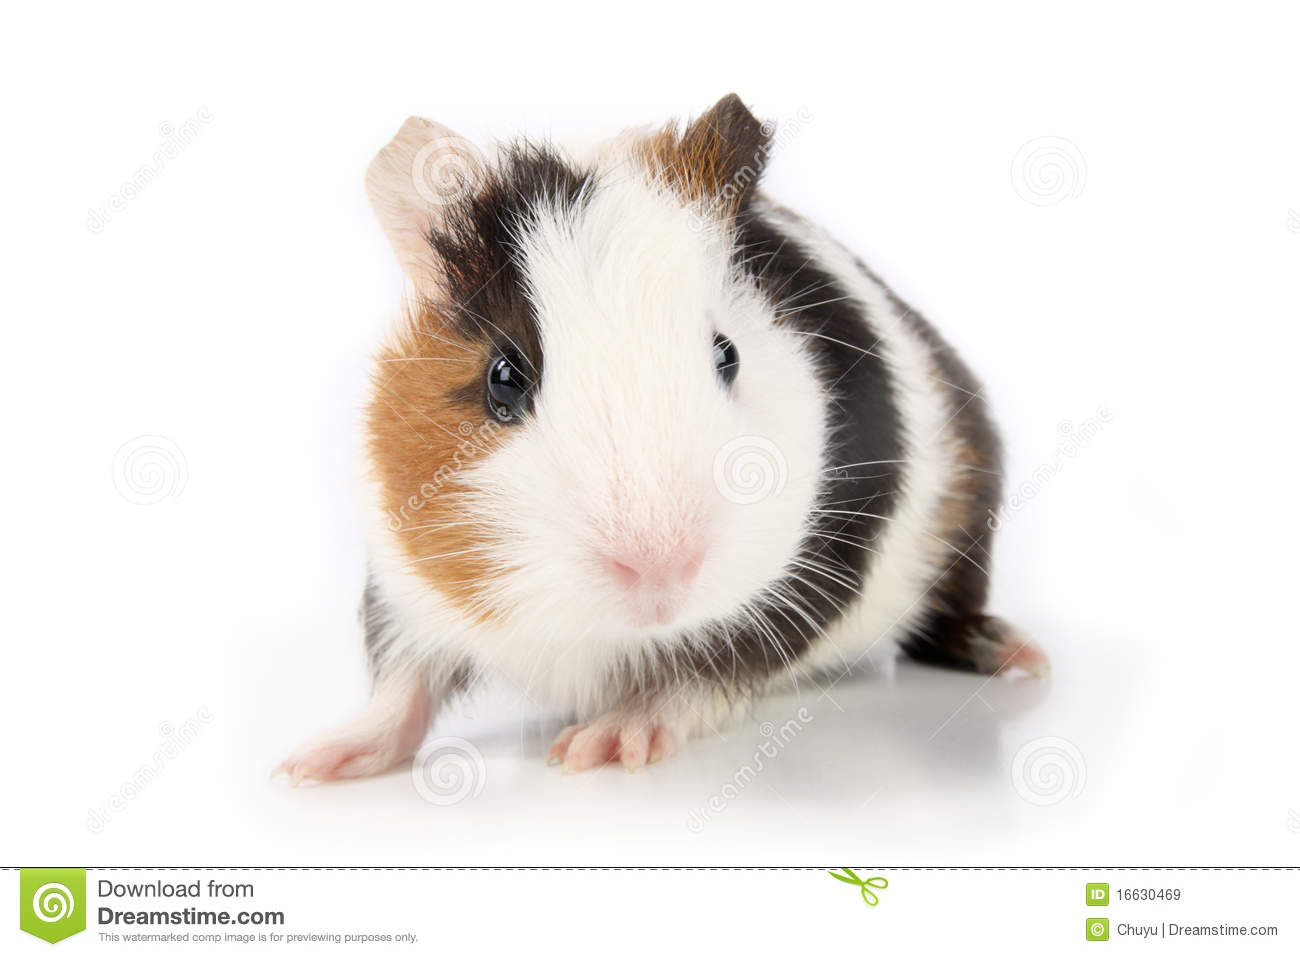 Guinea pig royalty free stock images image 16630469 for Guinea pig pictures free